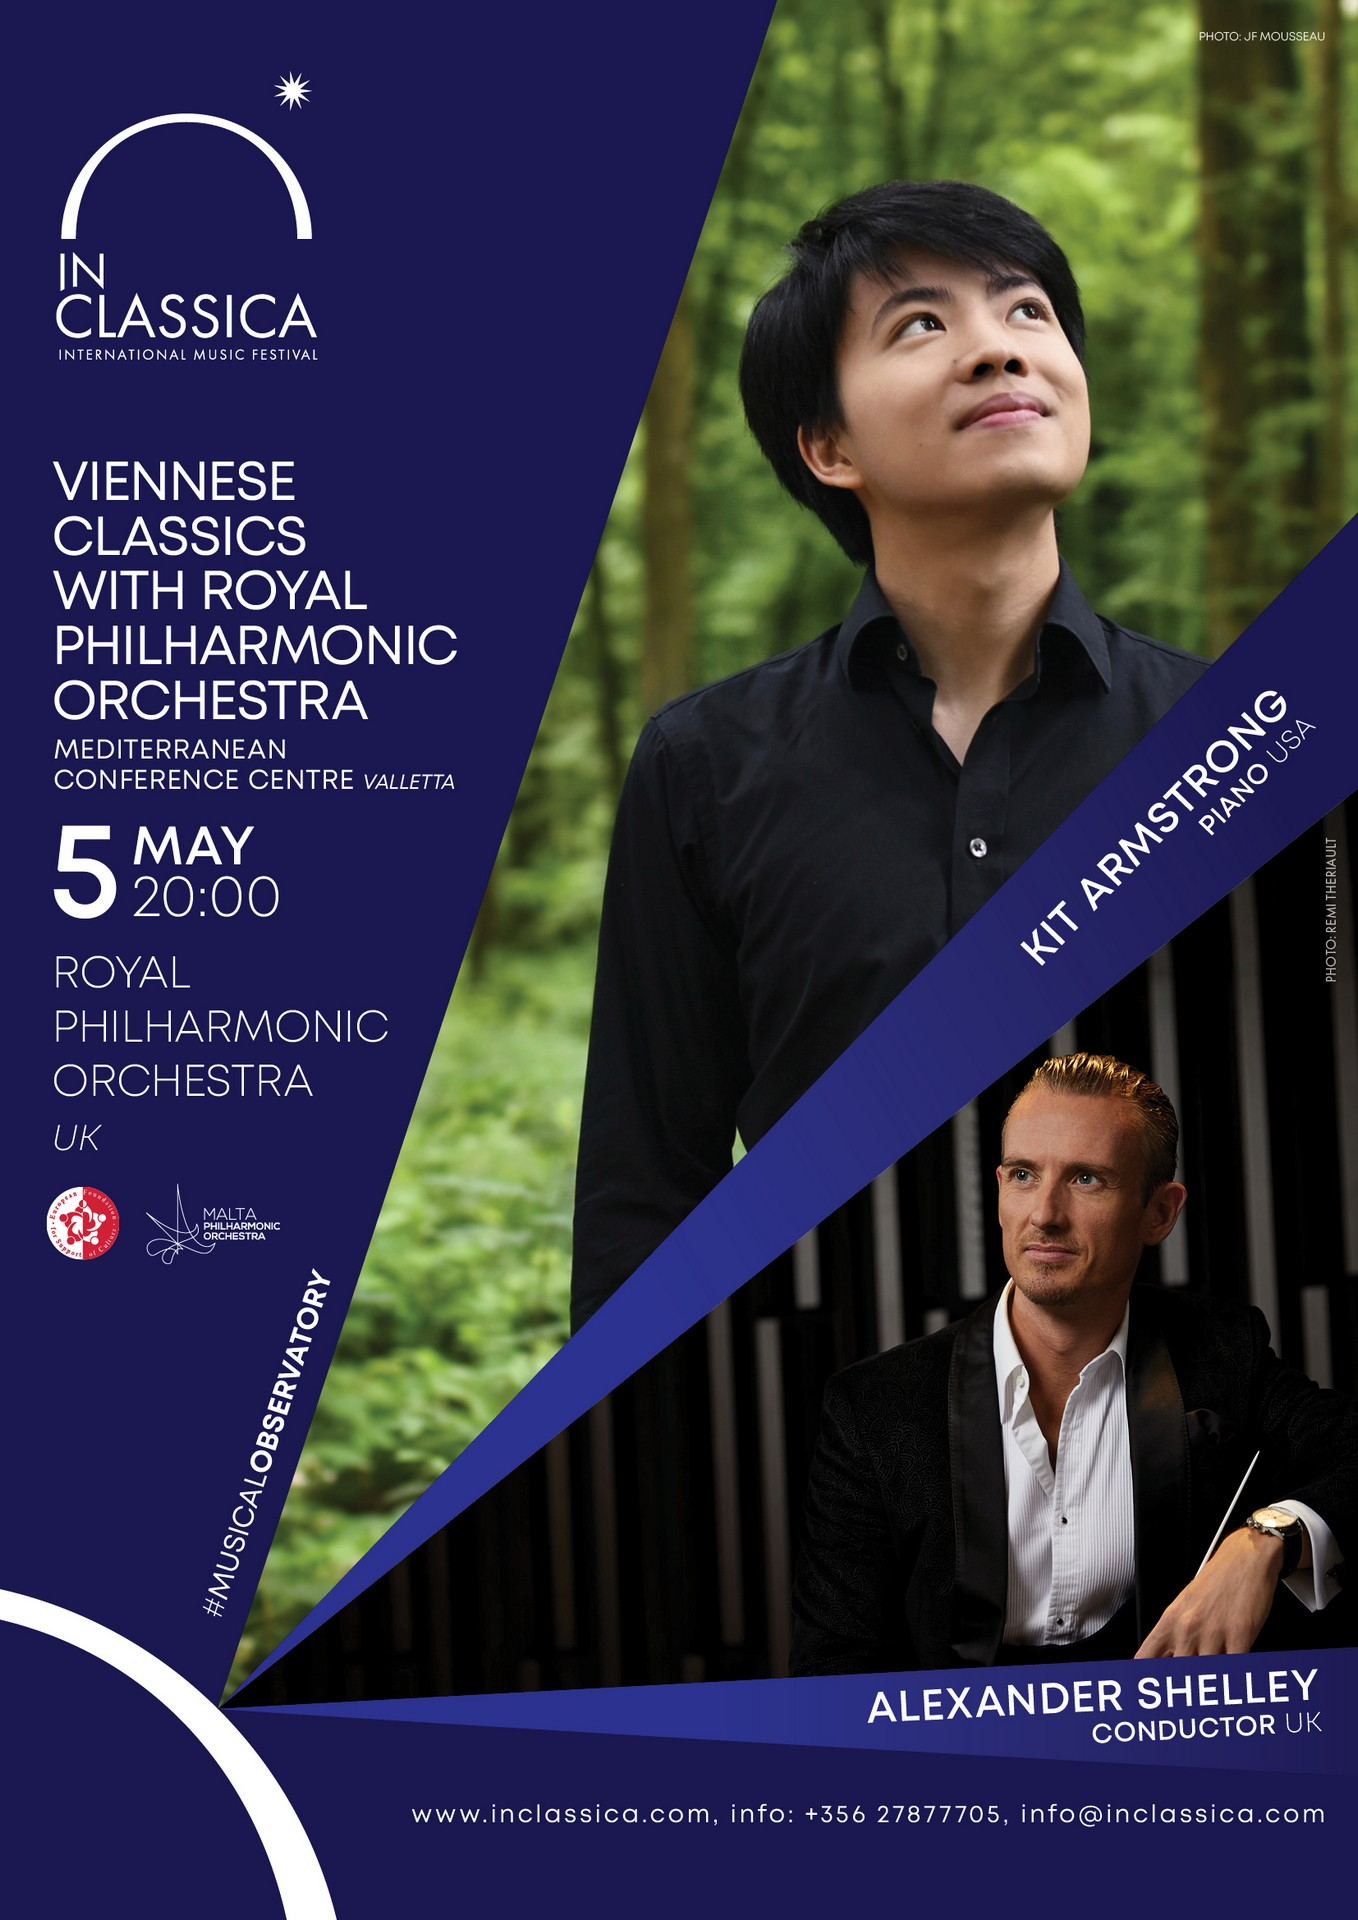 VIENNESE CLASSICS WITH ROYAL PHILHARMONIC ORCHESTRA flyer